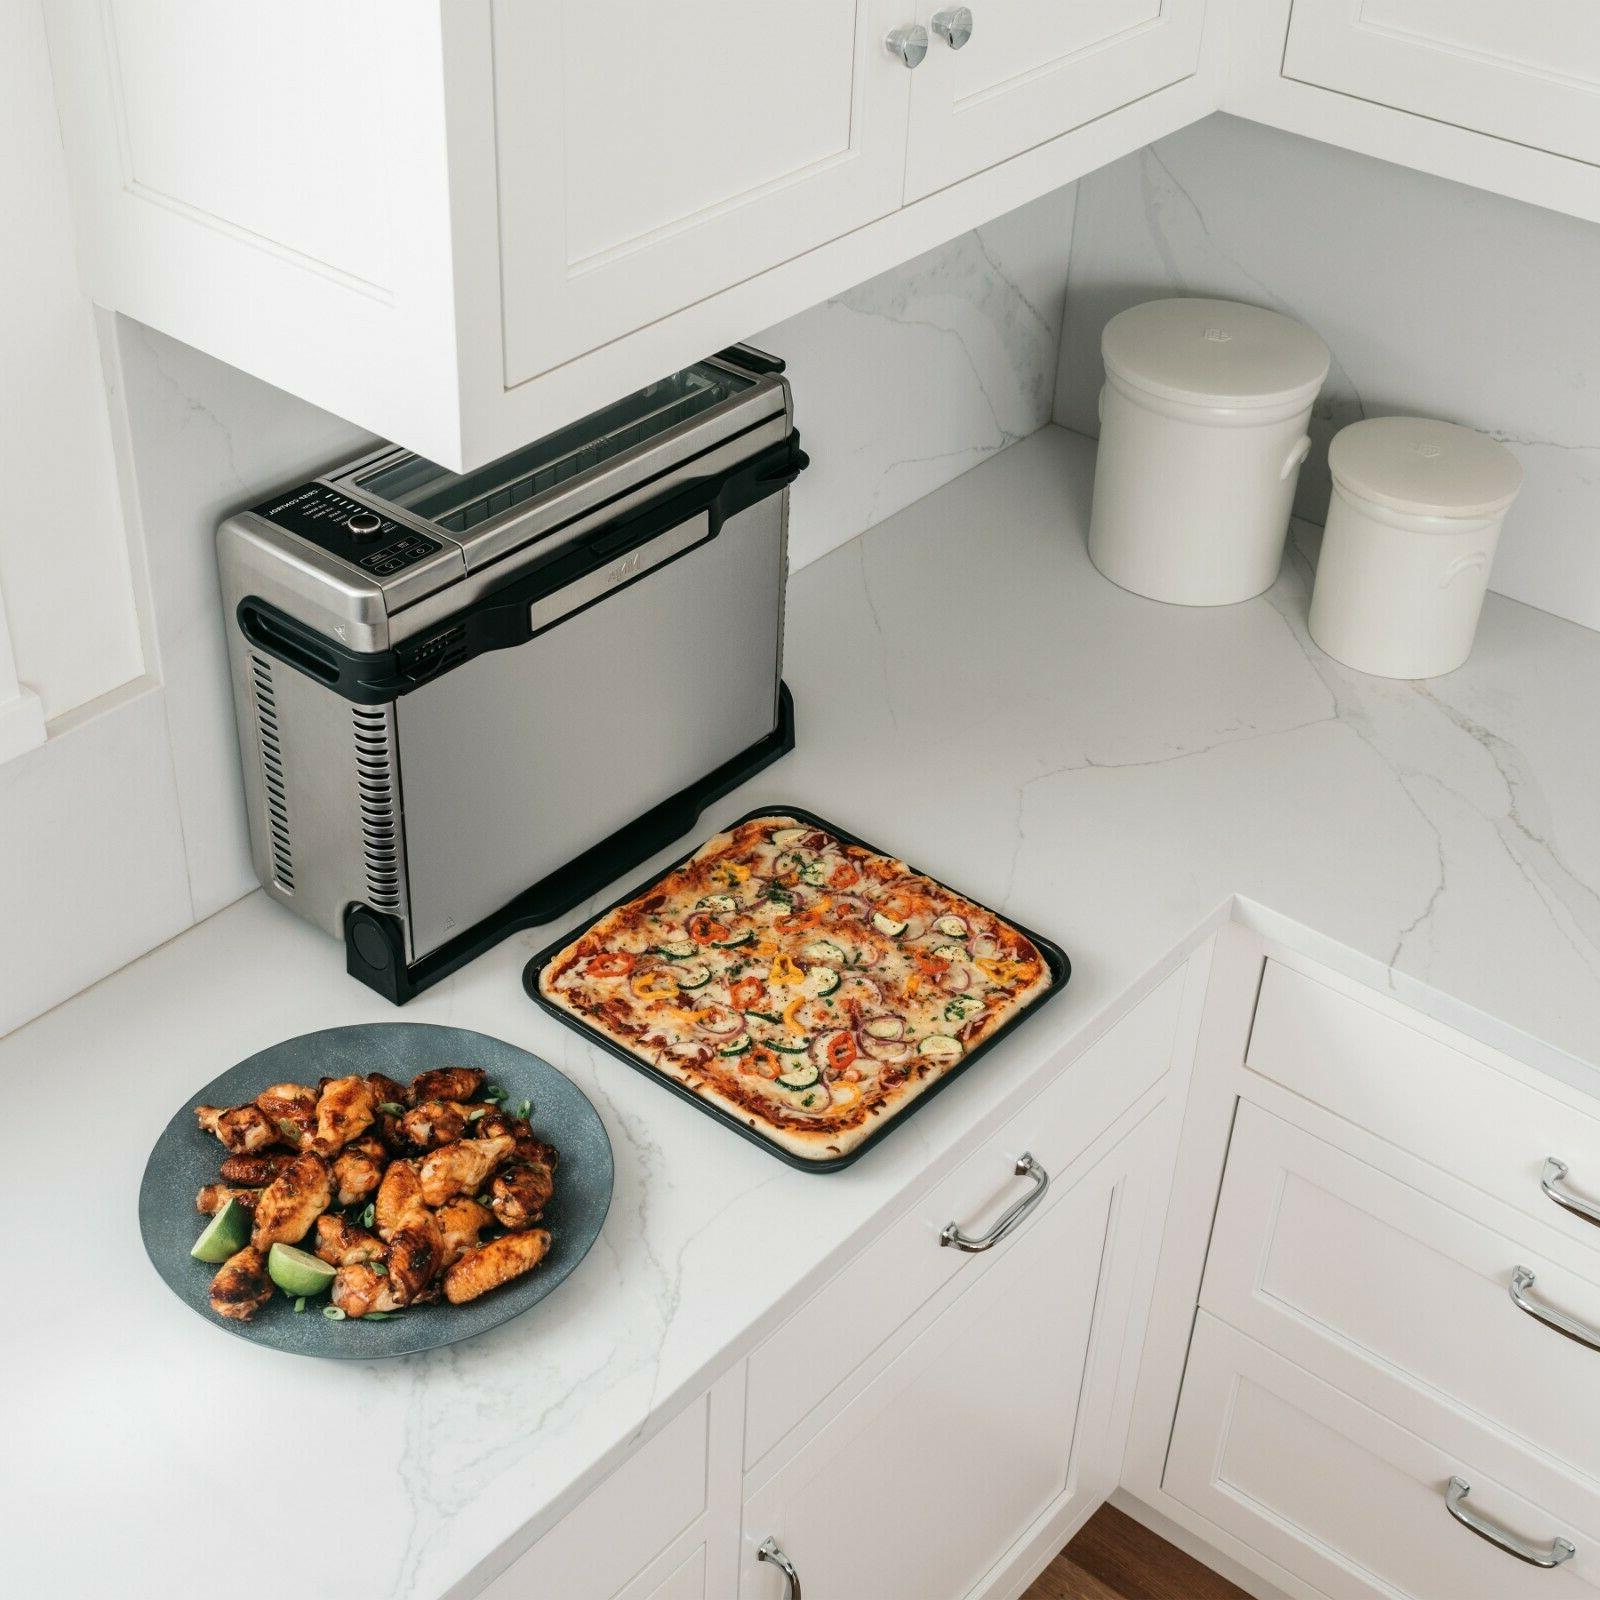 The Digital Air with Convection Flip-Up to